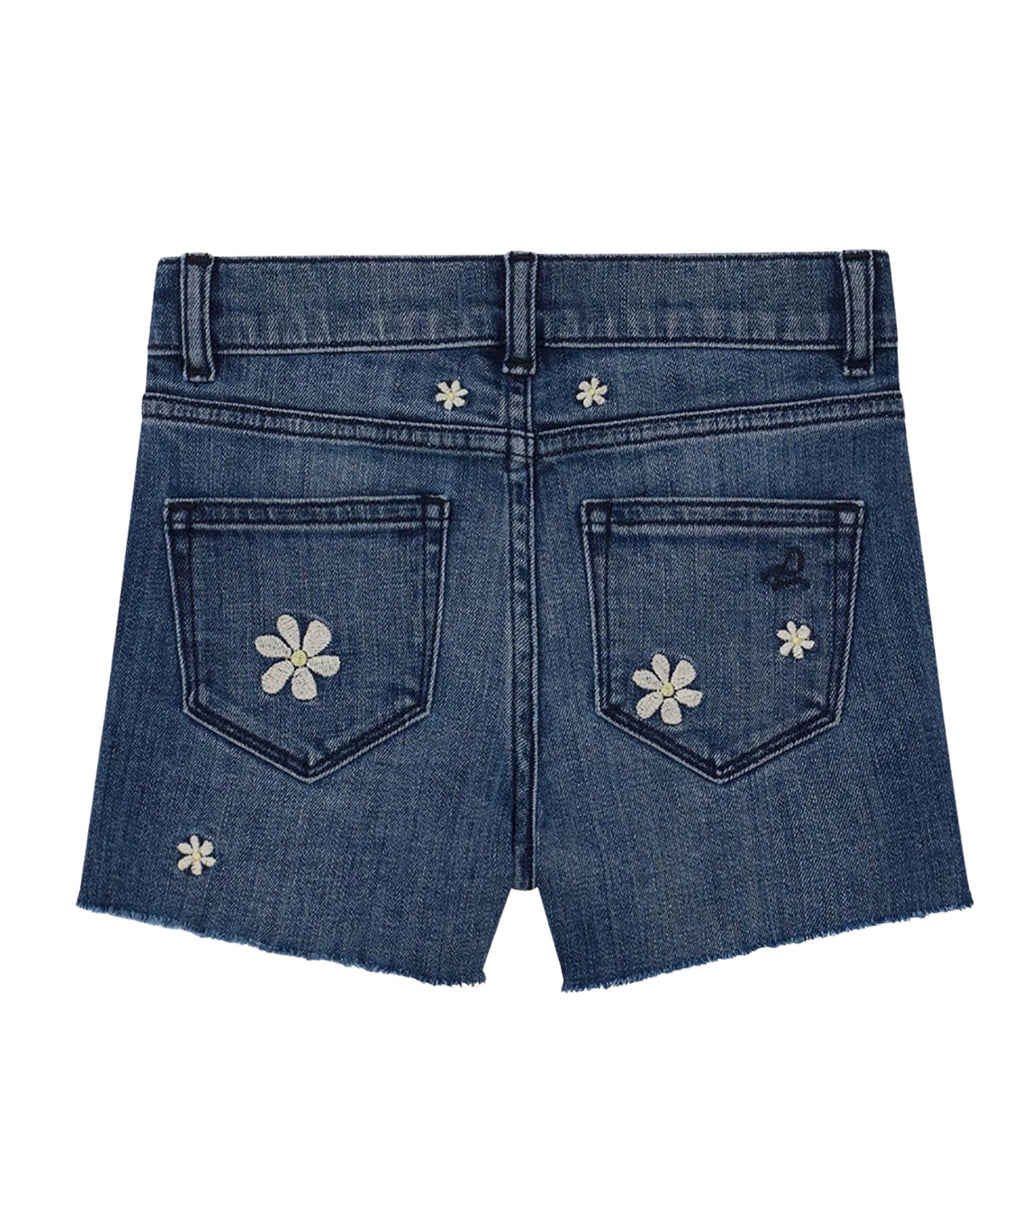 DL1961 Girls Lucy Pacific Daisy Cut Off Shorts